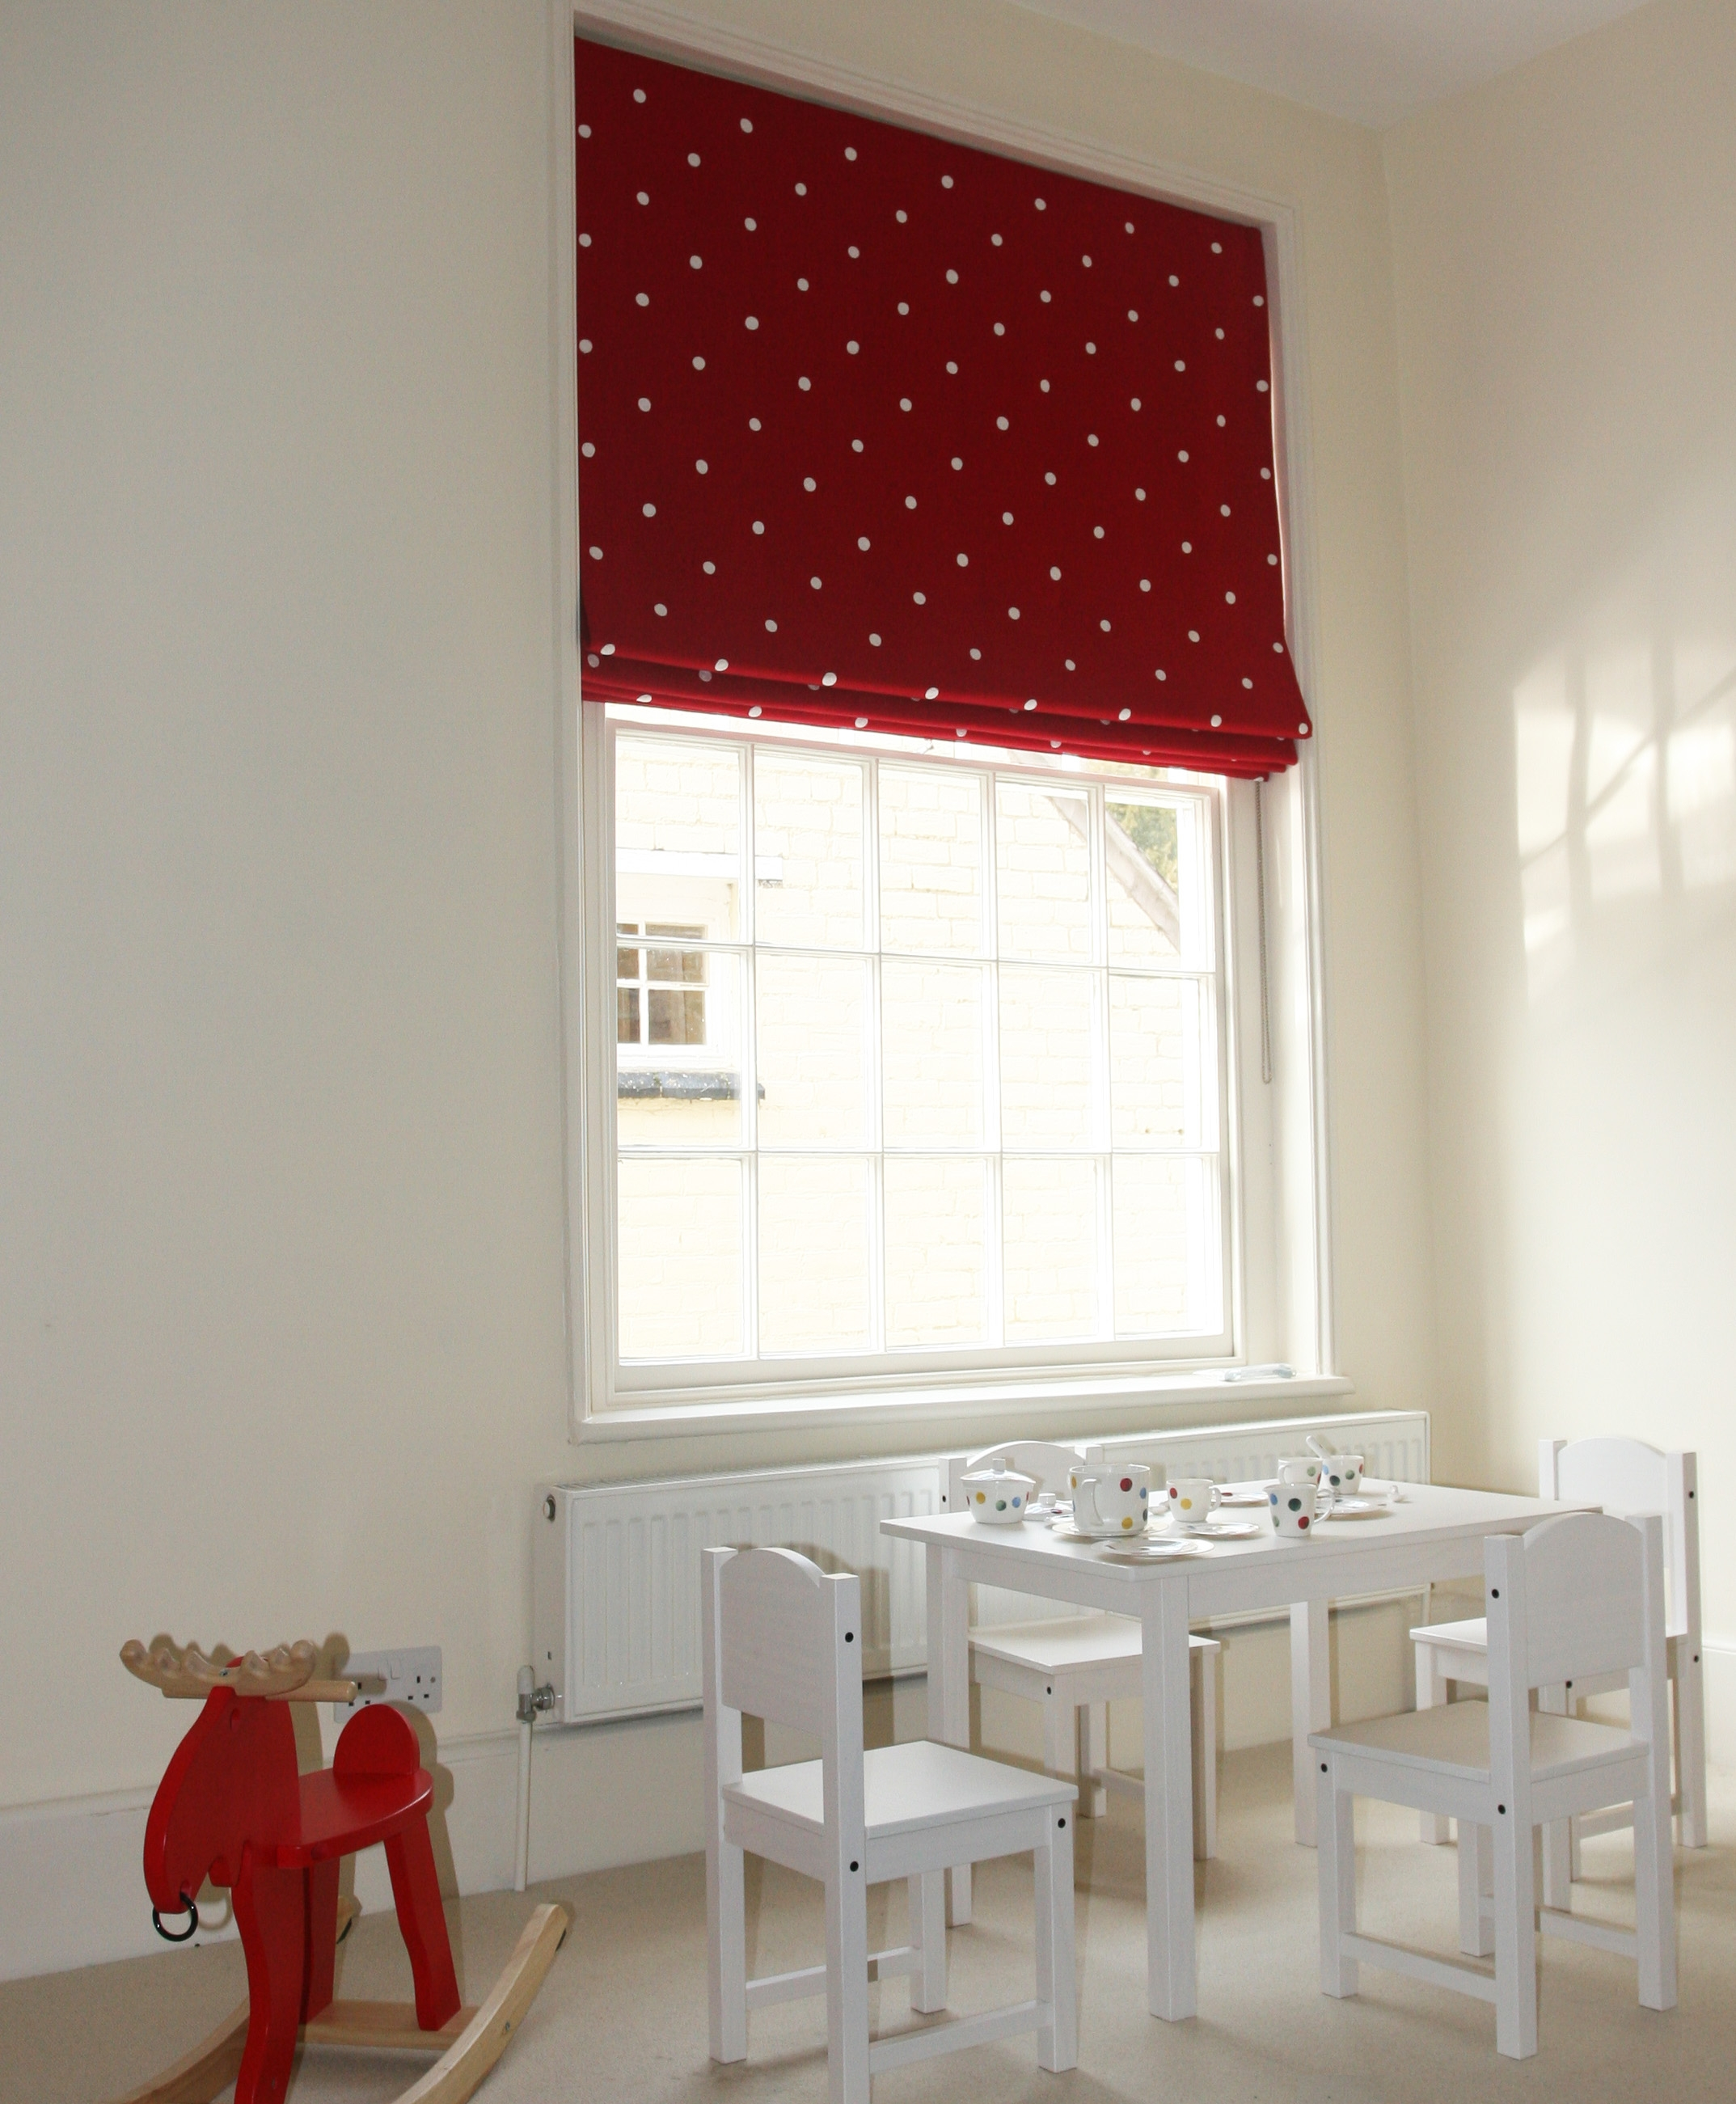 Childrens Bedroom Blackout Lined Roman Blind In Moghuls Throughout Roman Blinds With Blackout Lining (Image 4 of 15)